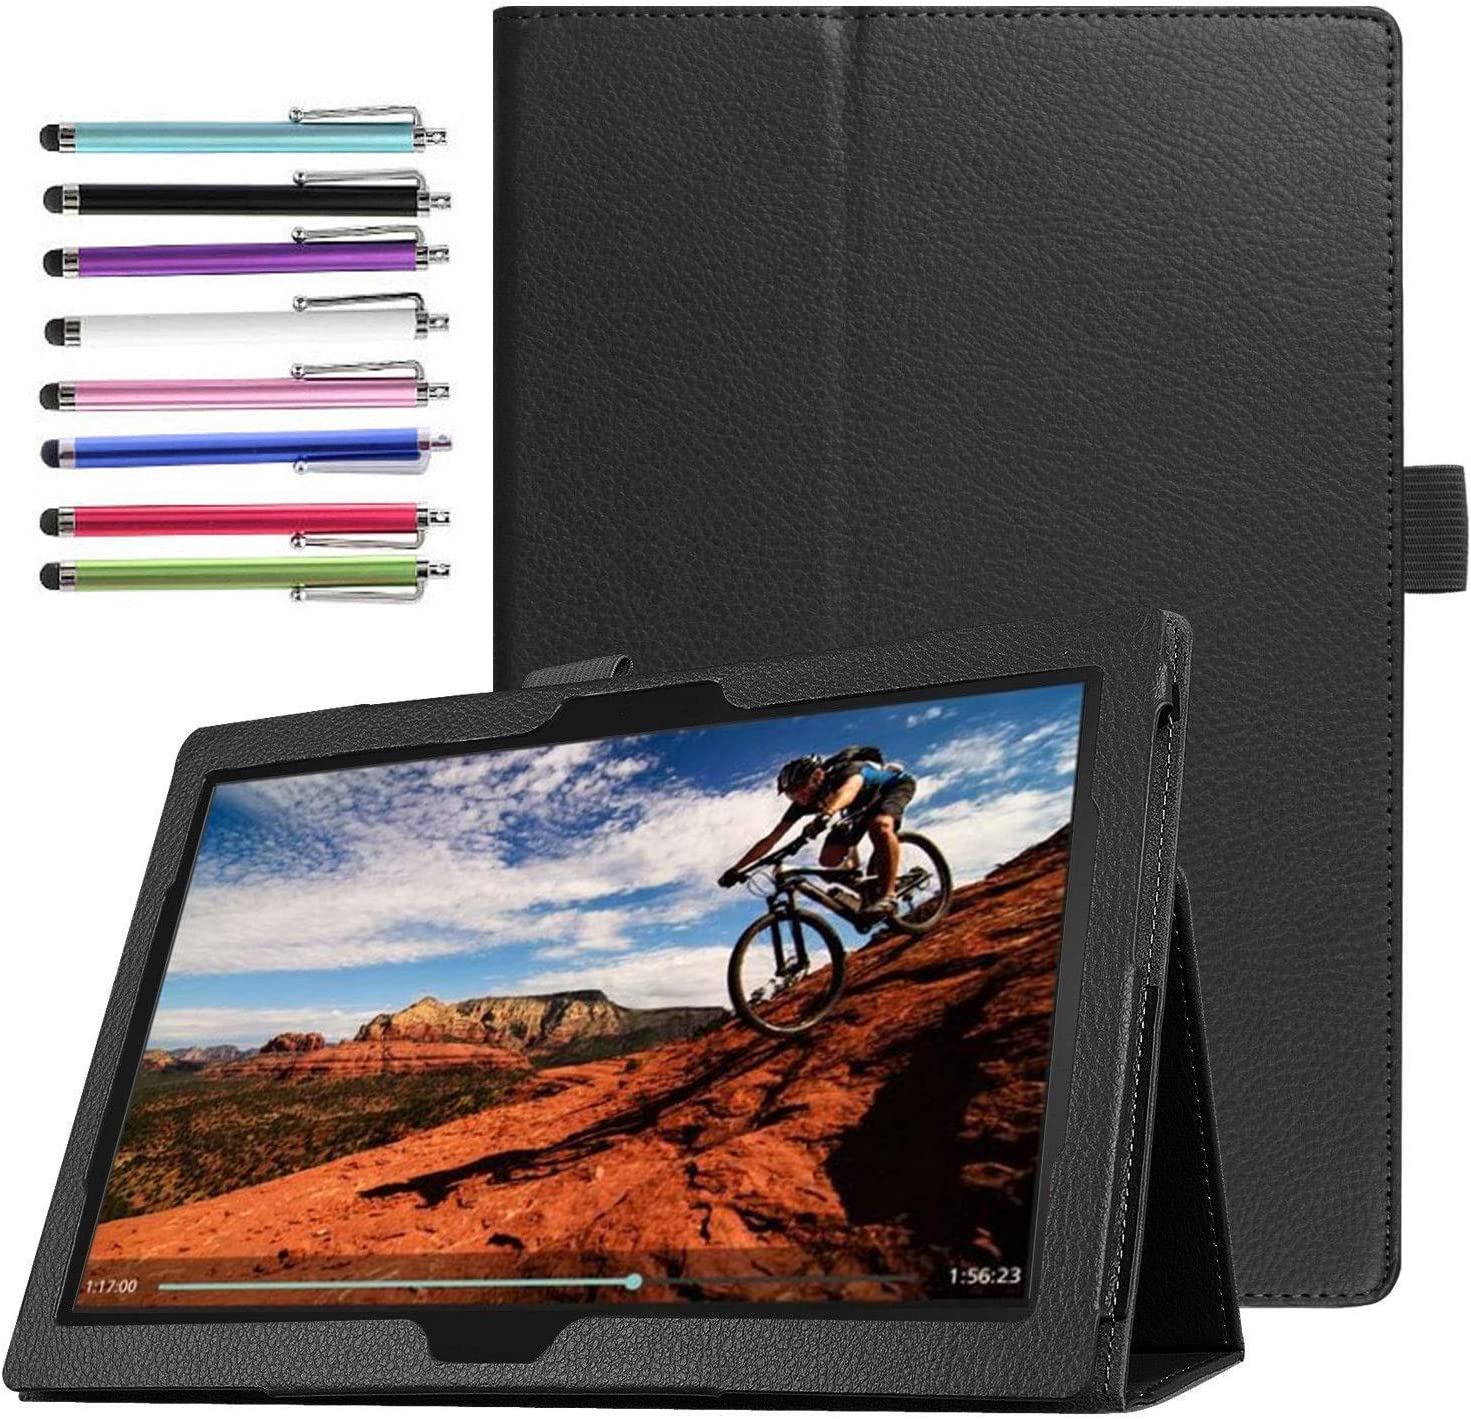 Epicgadget Case for Lenovo Smart Tab M10 TB-X505F/TB-X605F Slim Lightweight Folio PU Leather Folding Stand Cover Case for Lenovo Table M10 10.1 Inch Display 2019/2018 Released (Black)